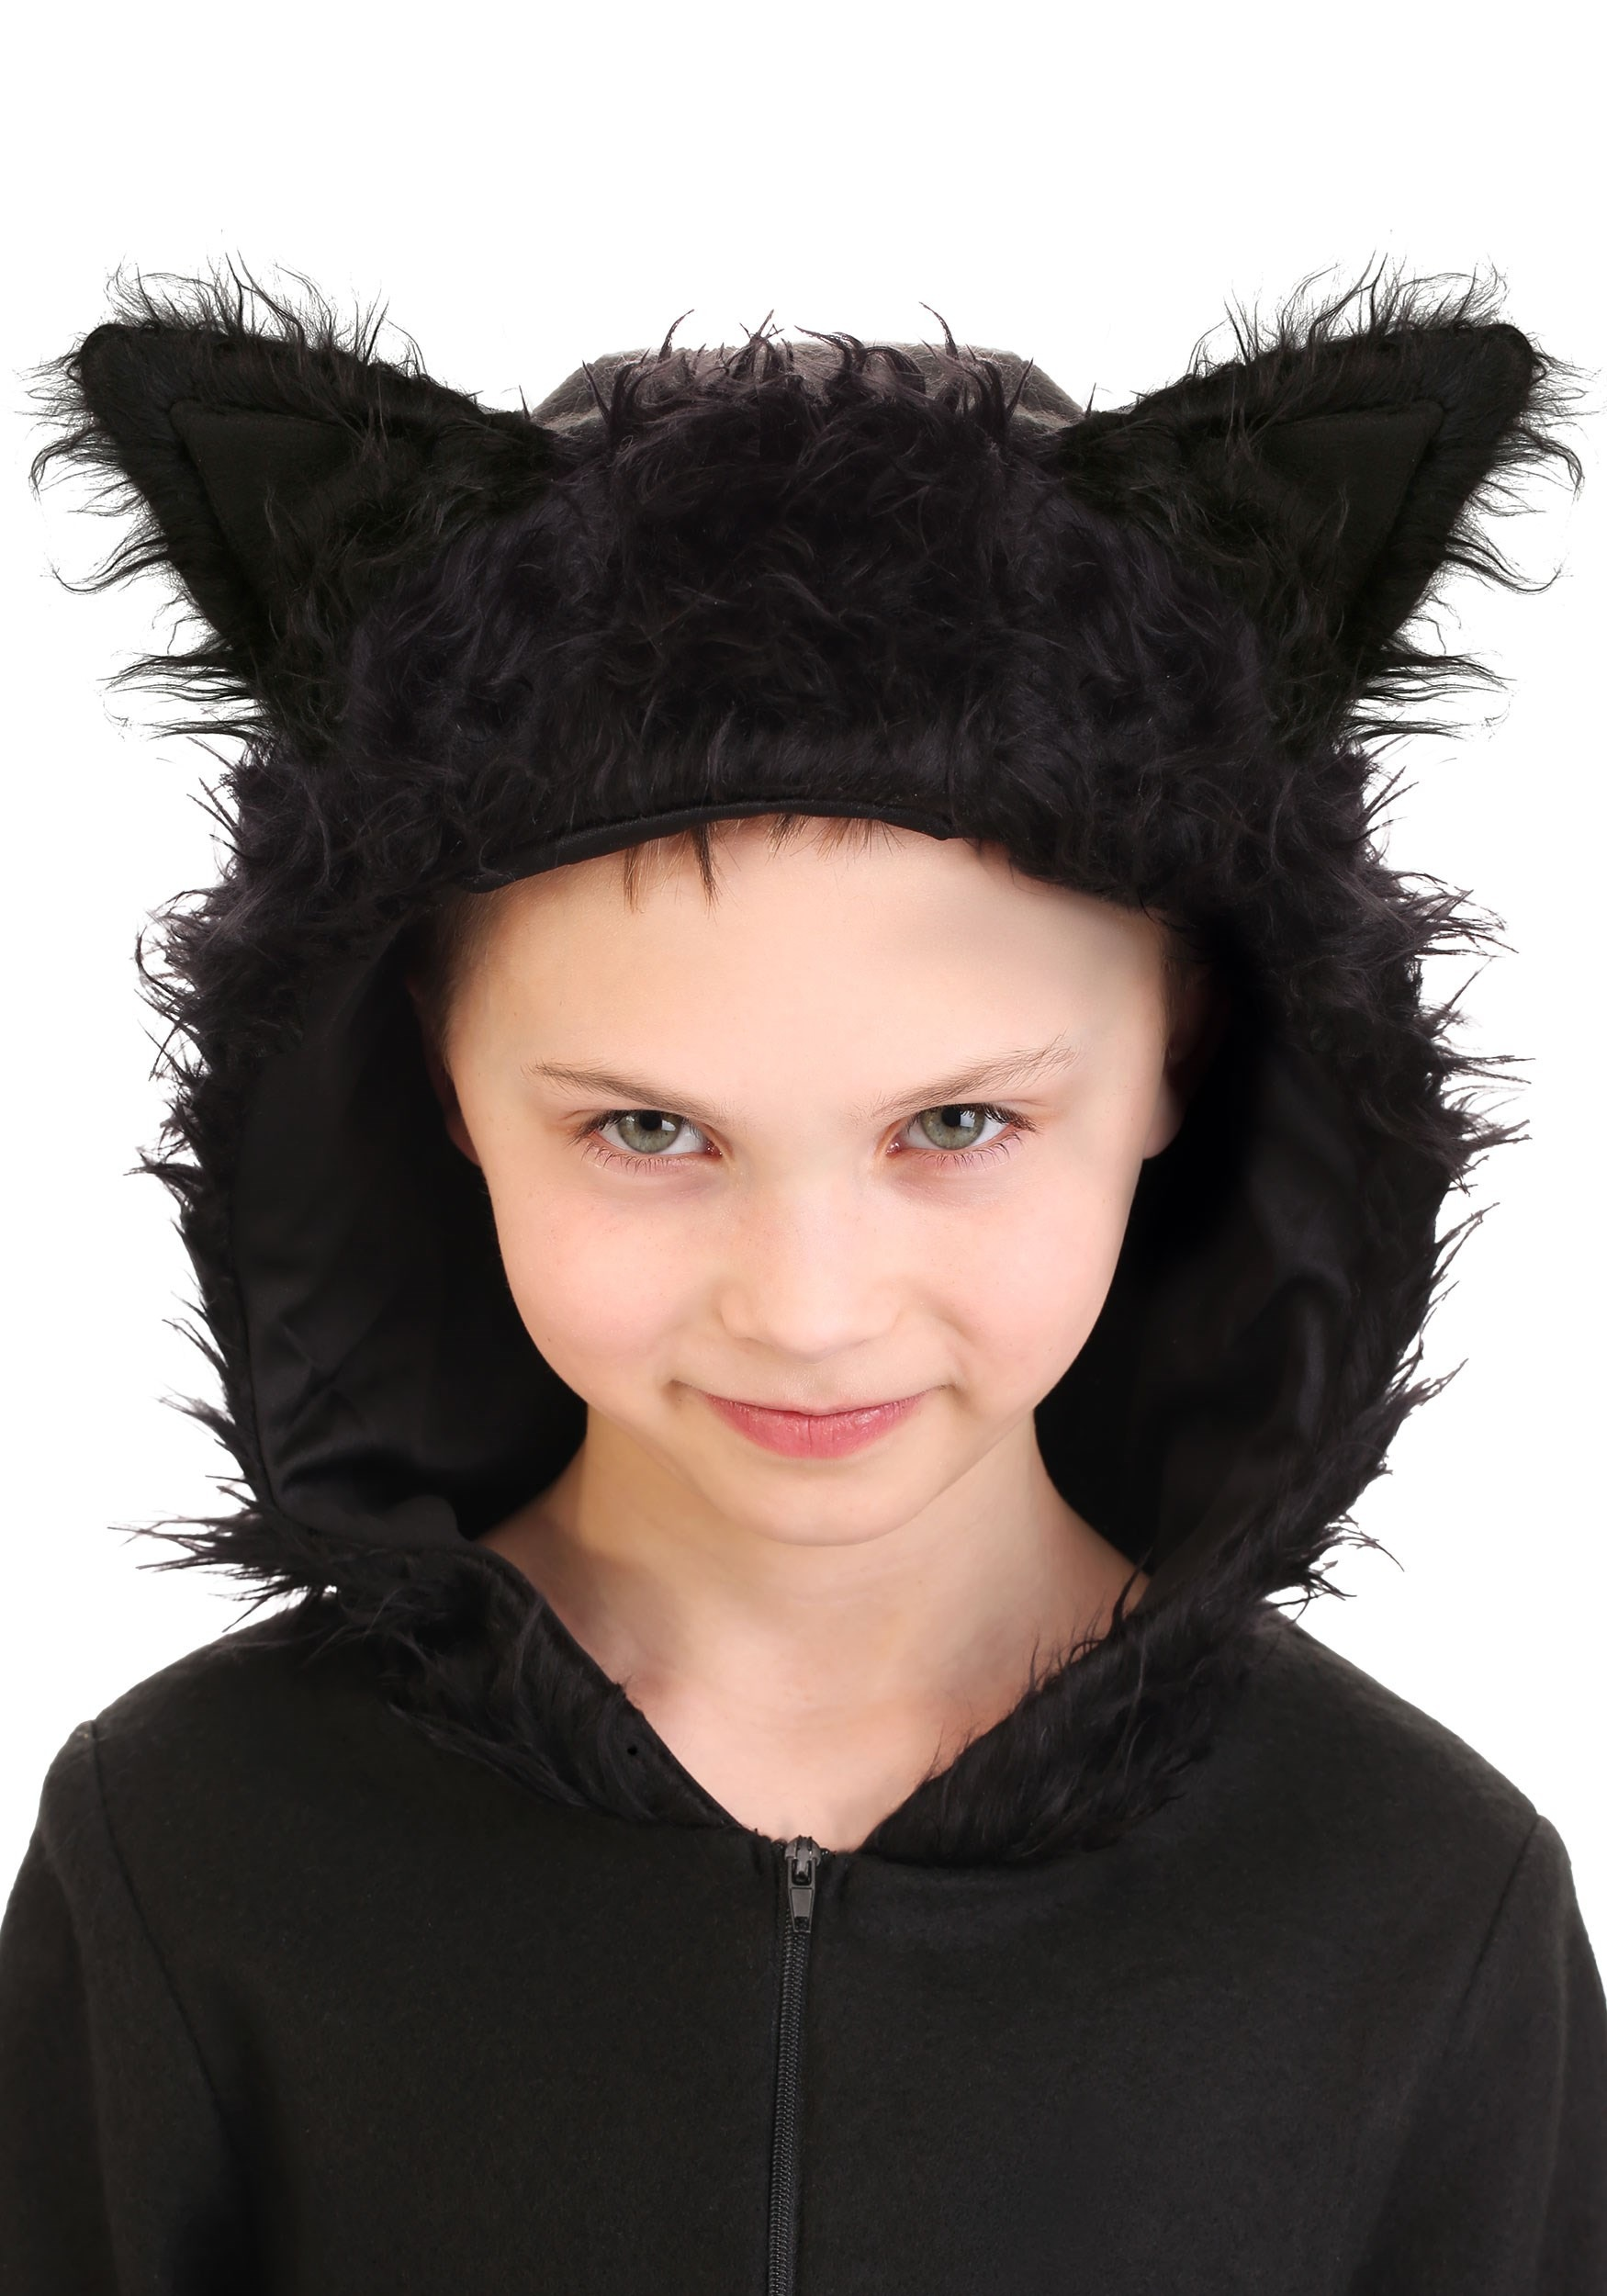 Fleece Bat Costume For Toddlers